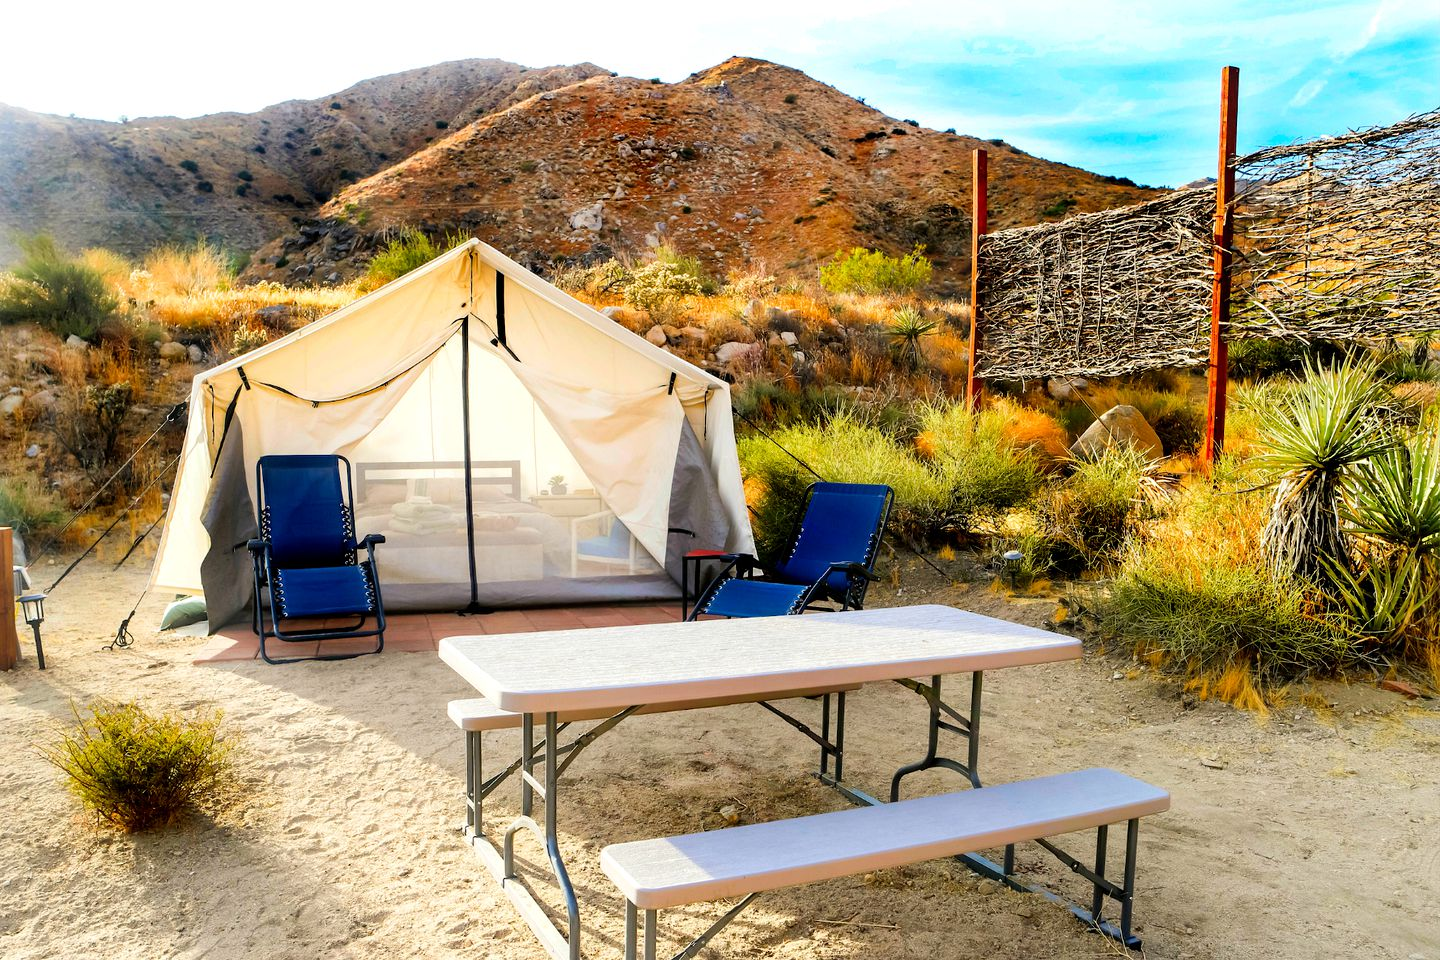 This Morongo Valley rental is great for luxury camping in California